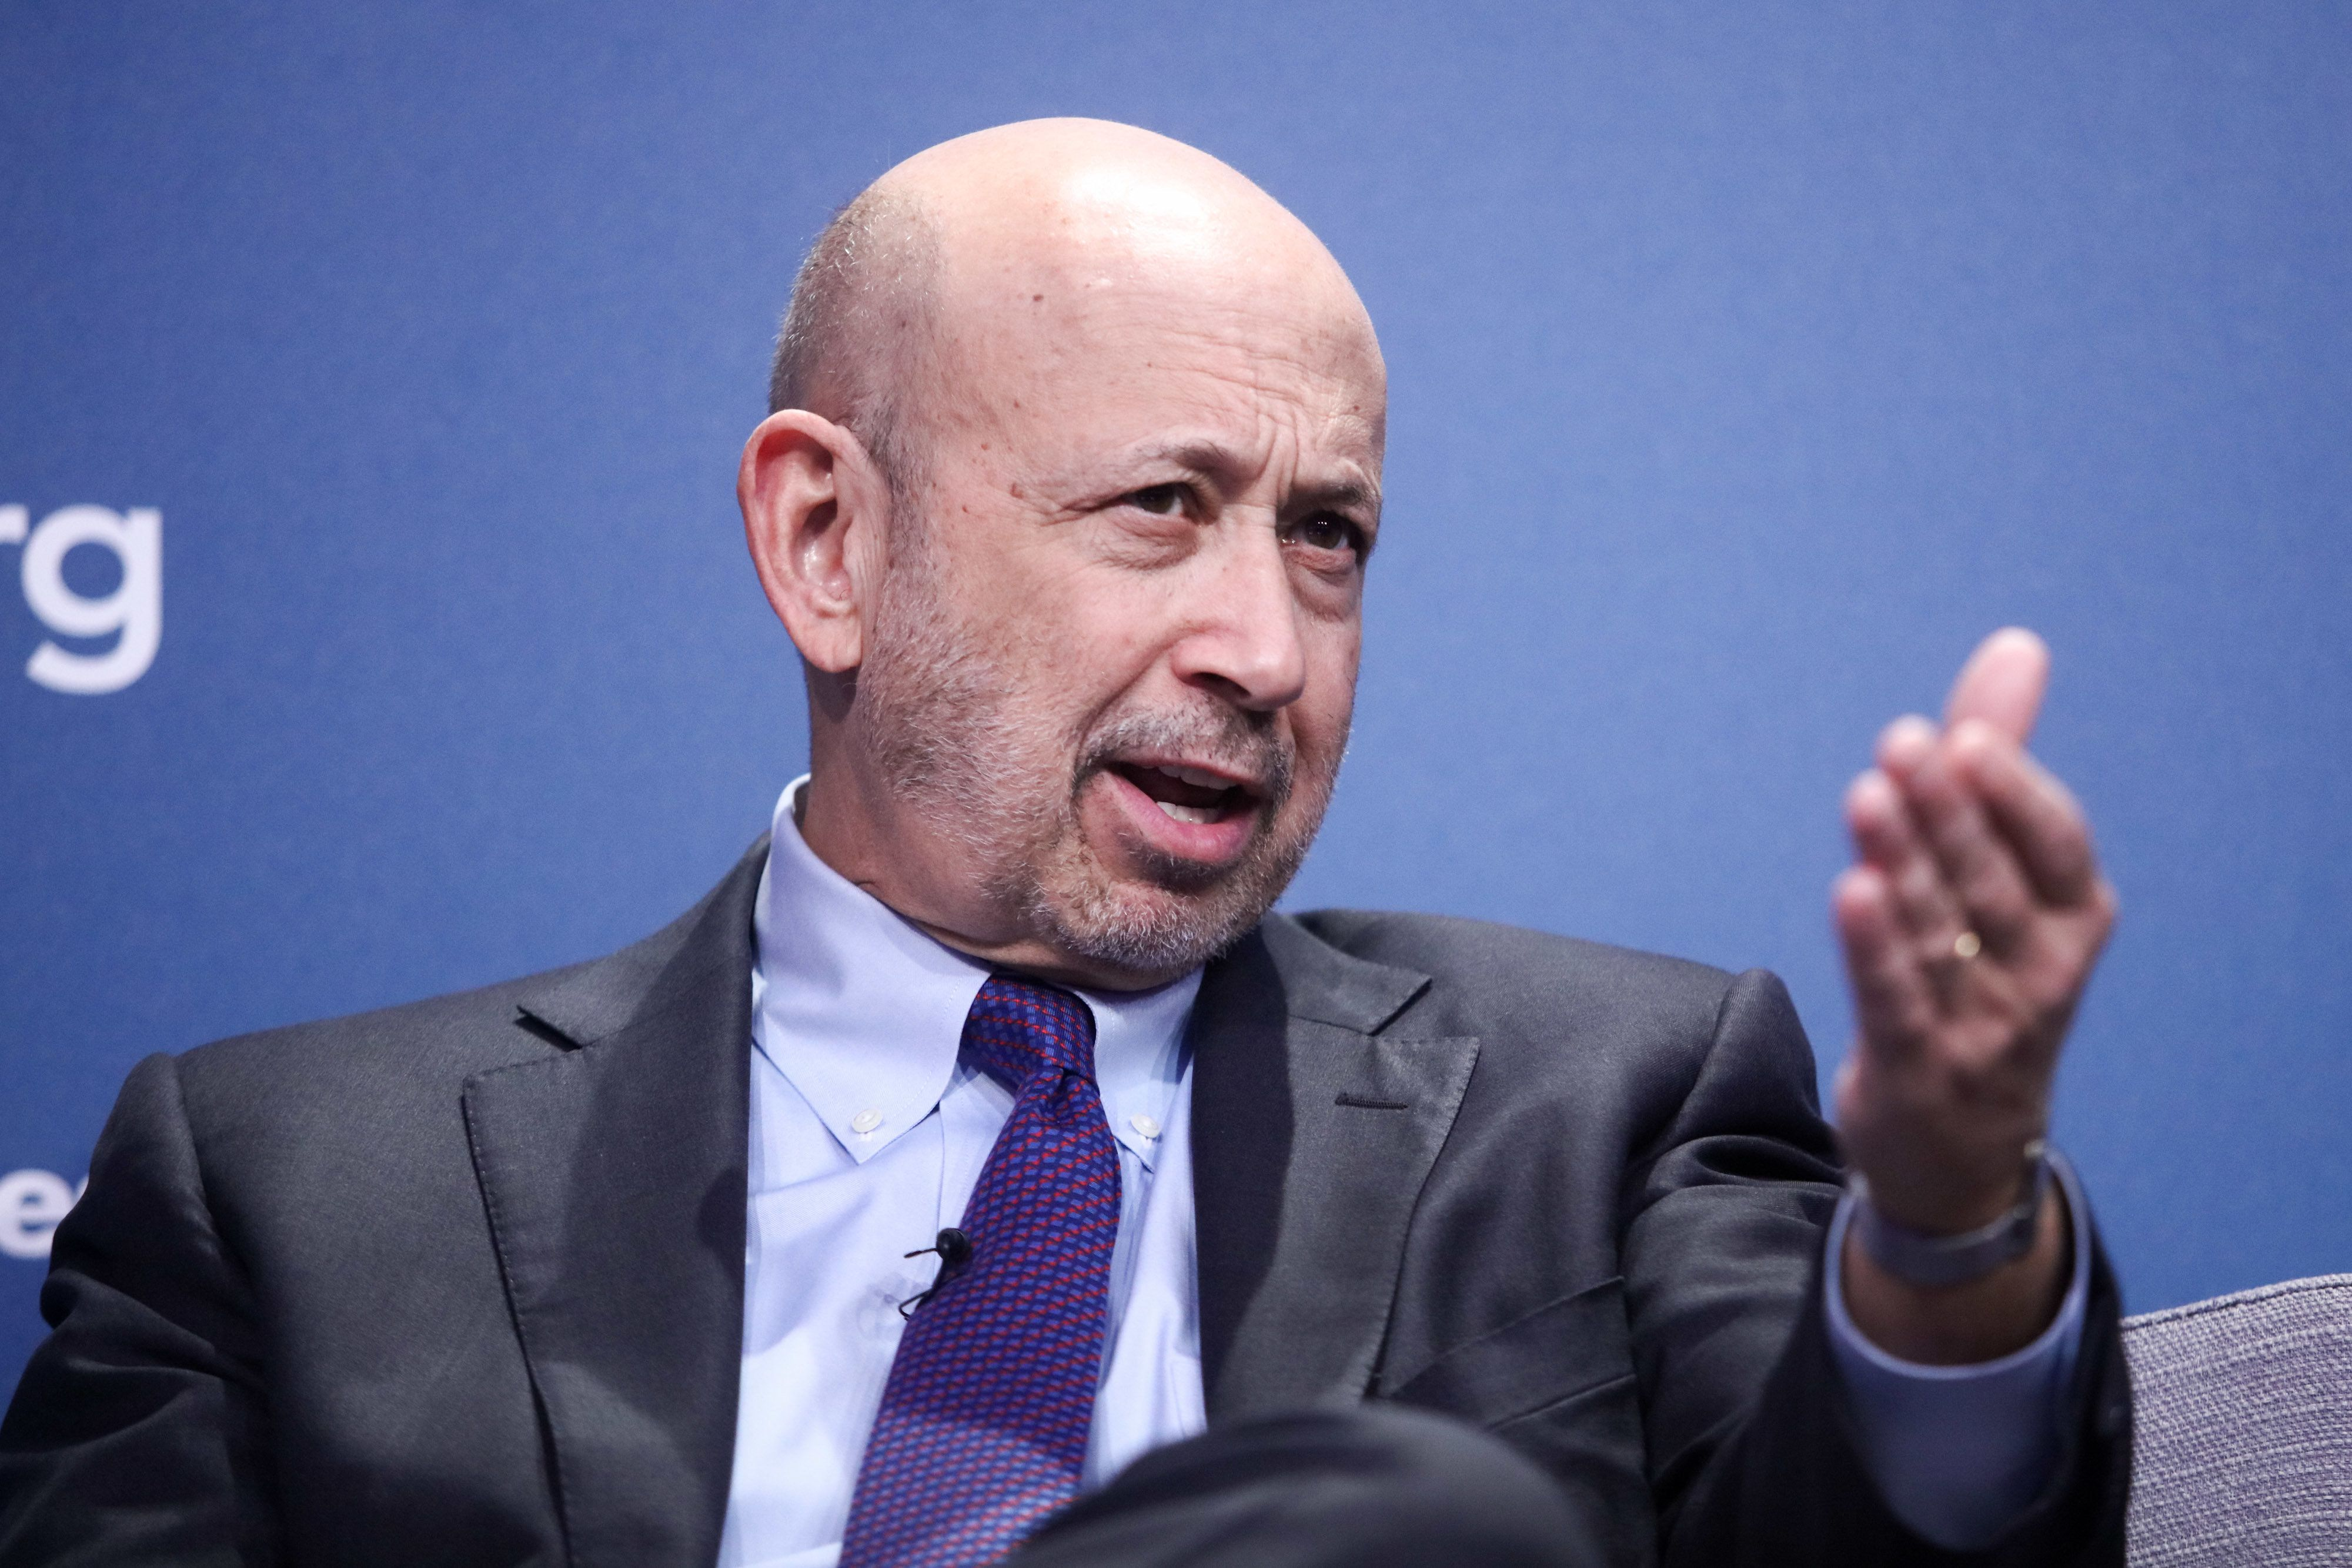 Goldman Sachs CEO Stokes Post-Brexit Banking Fears With Thinly-Veiled Shot At